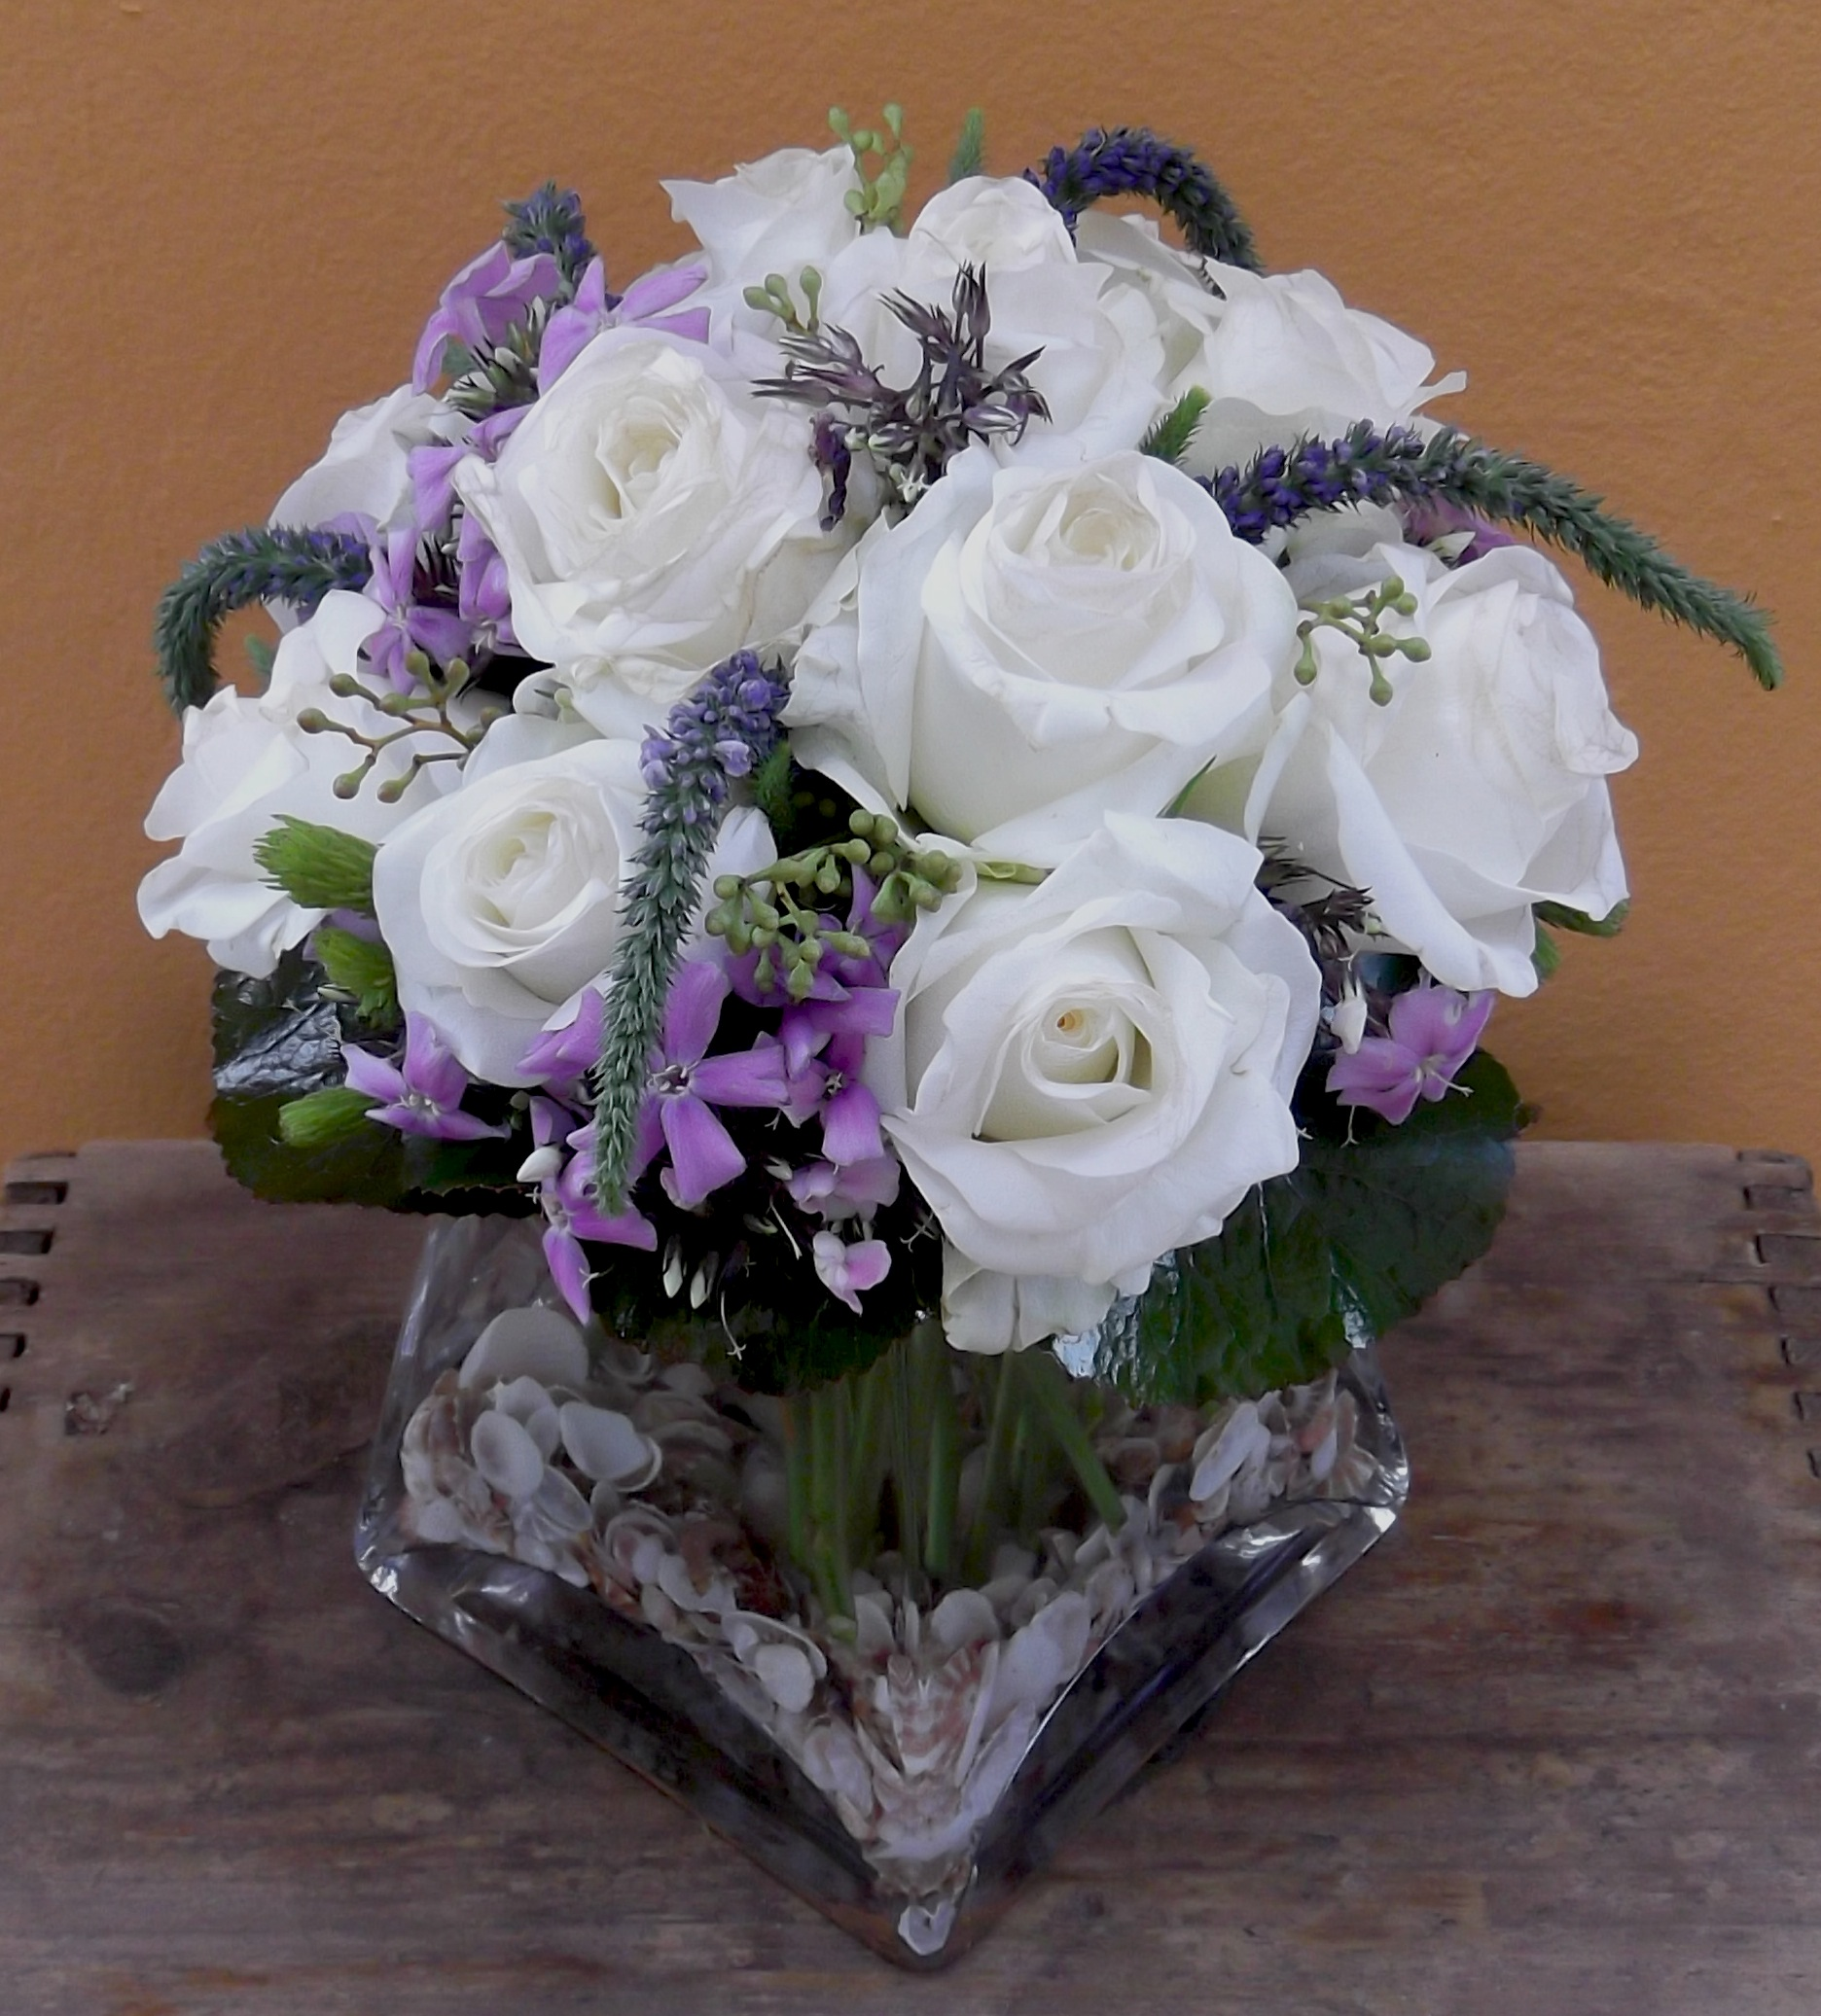 A dozen white roses 60 fusion floral art small shells in the glass vase blue purple flowers add a beachy touch to a dozen white roses 60 mightylinksfo